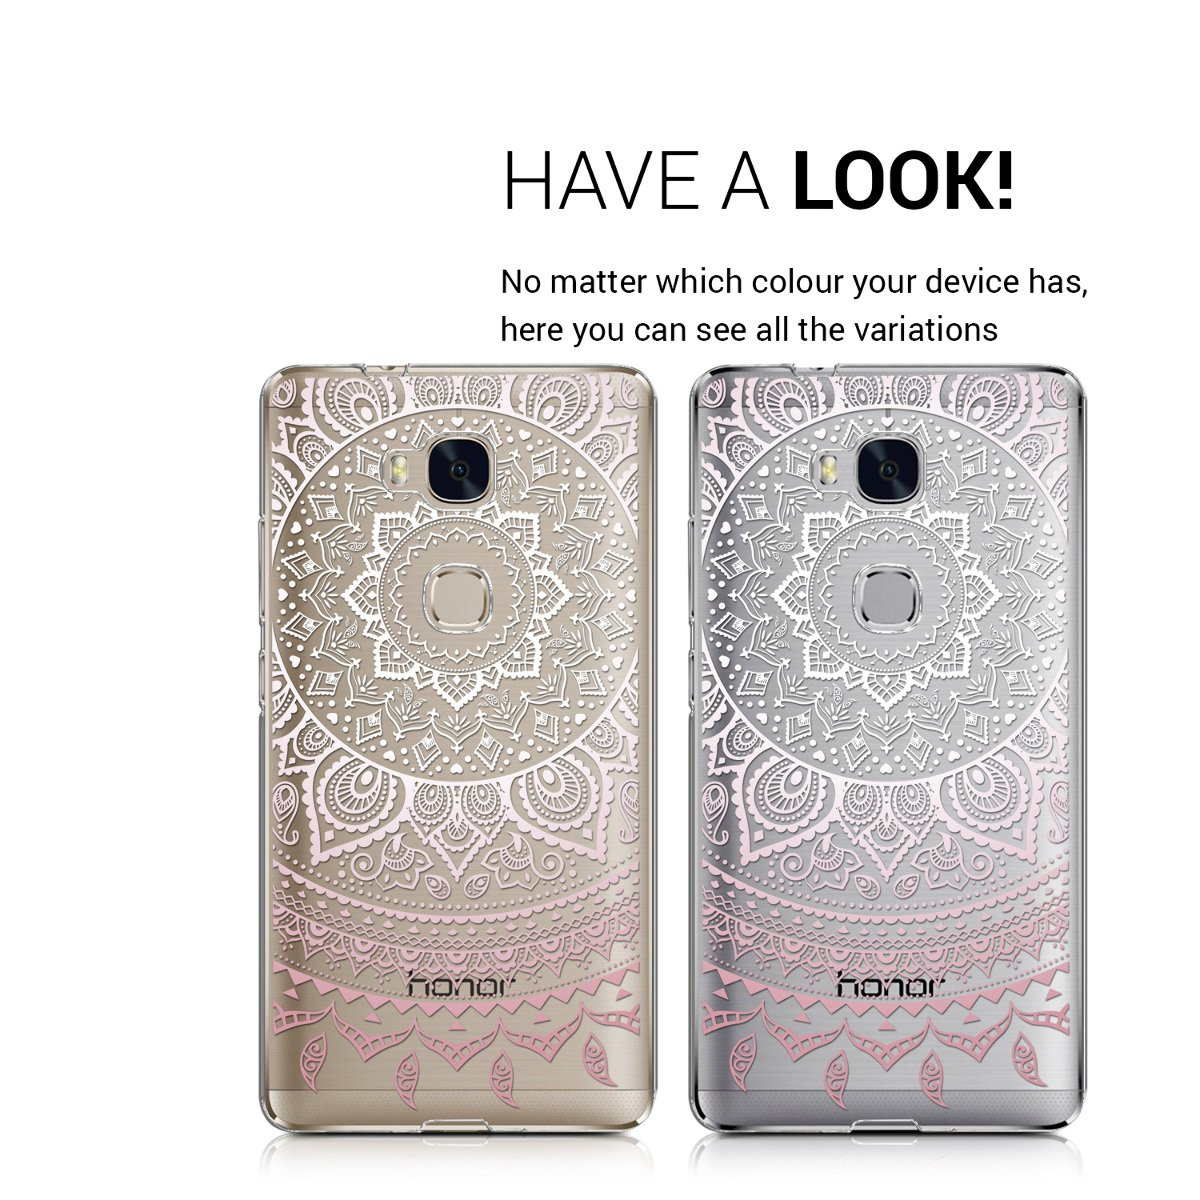 kwmobile TPU Silicone Case for Huawei Honor 5X / GR5 - Crystal Clear Smartphone Back Case Protective Cover - Light Pink/White/Transparent